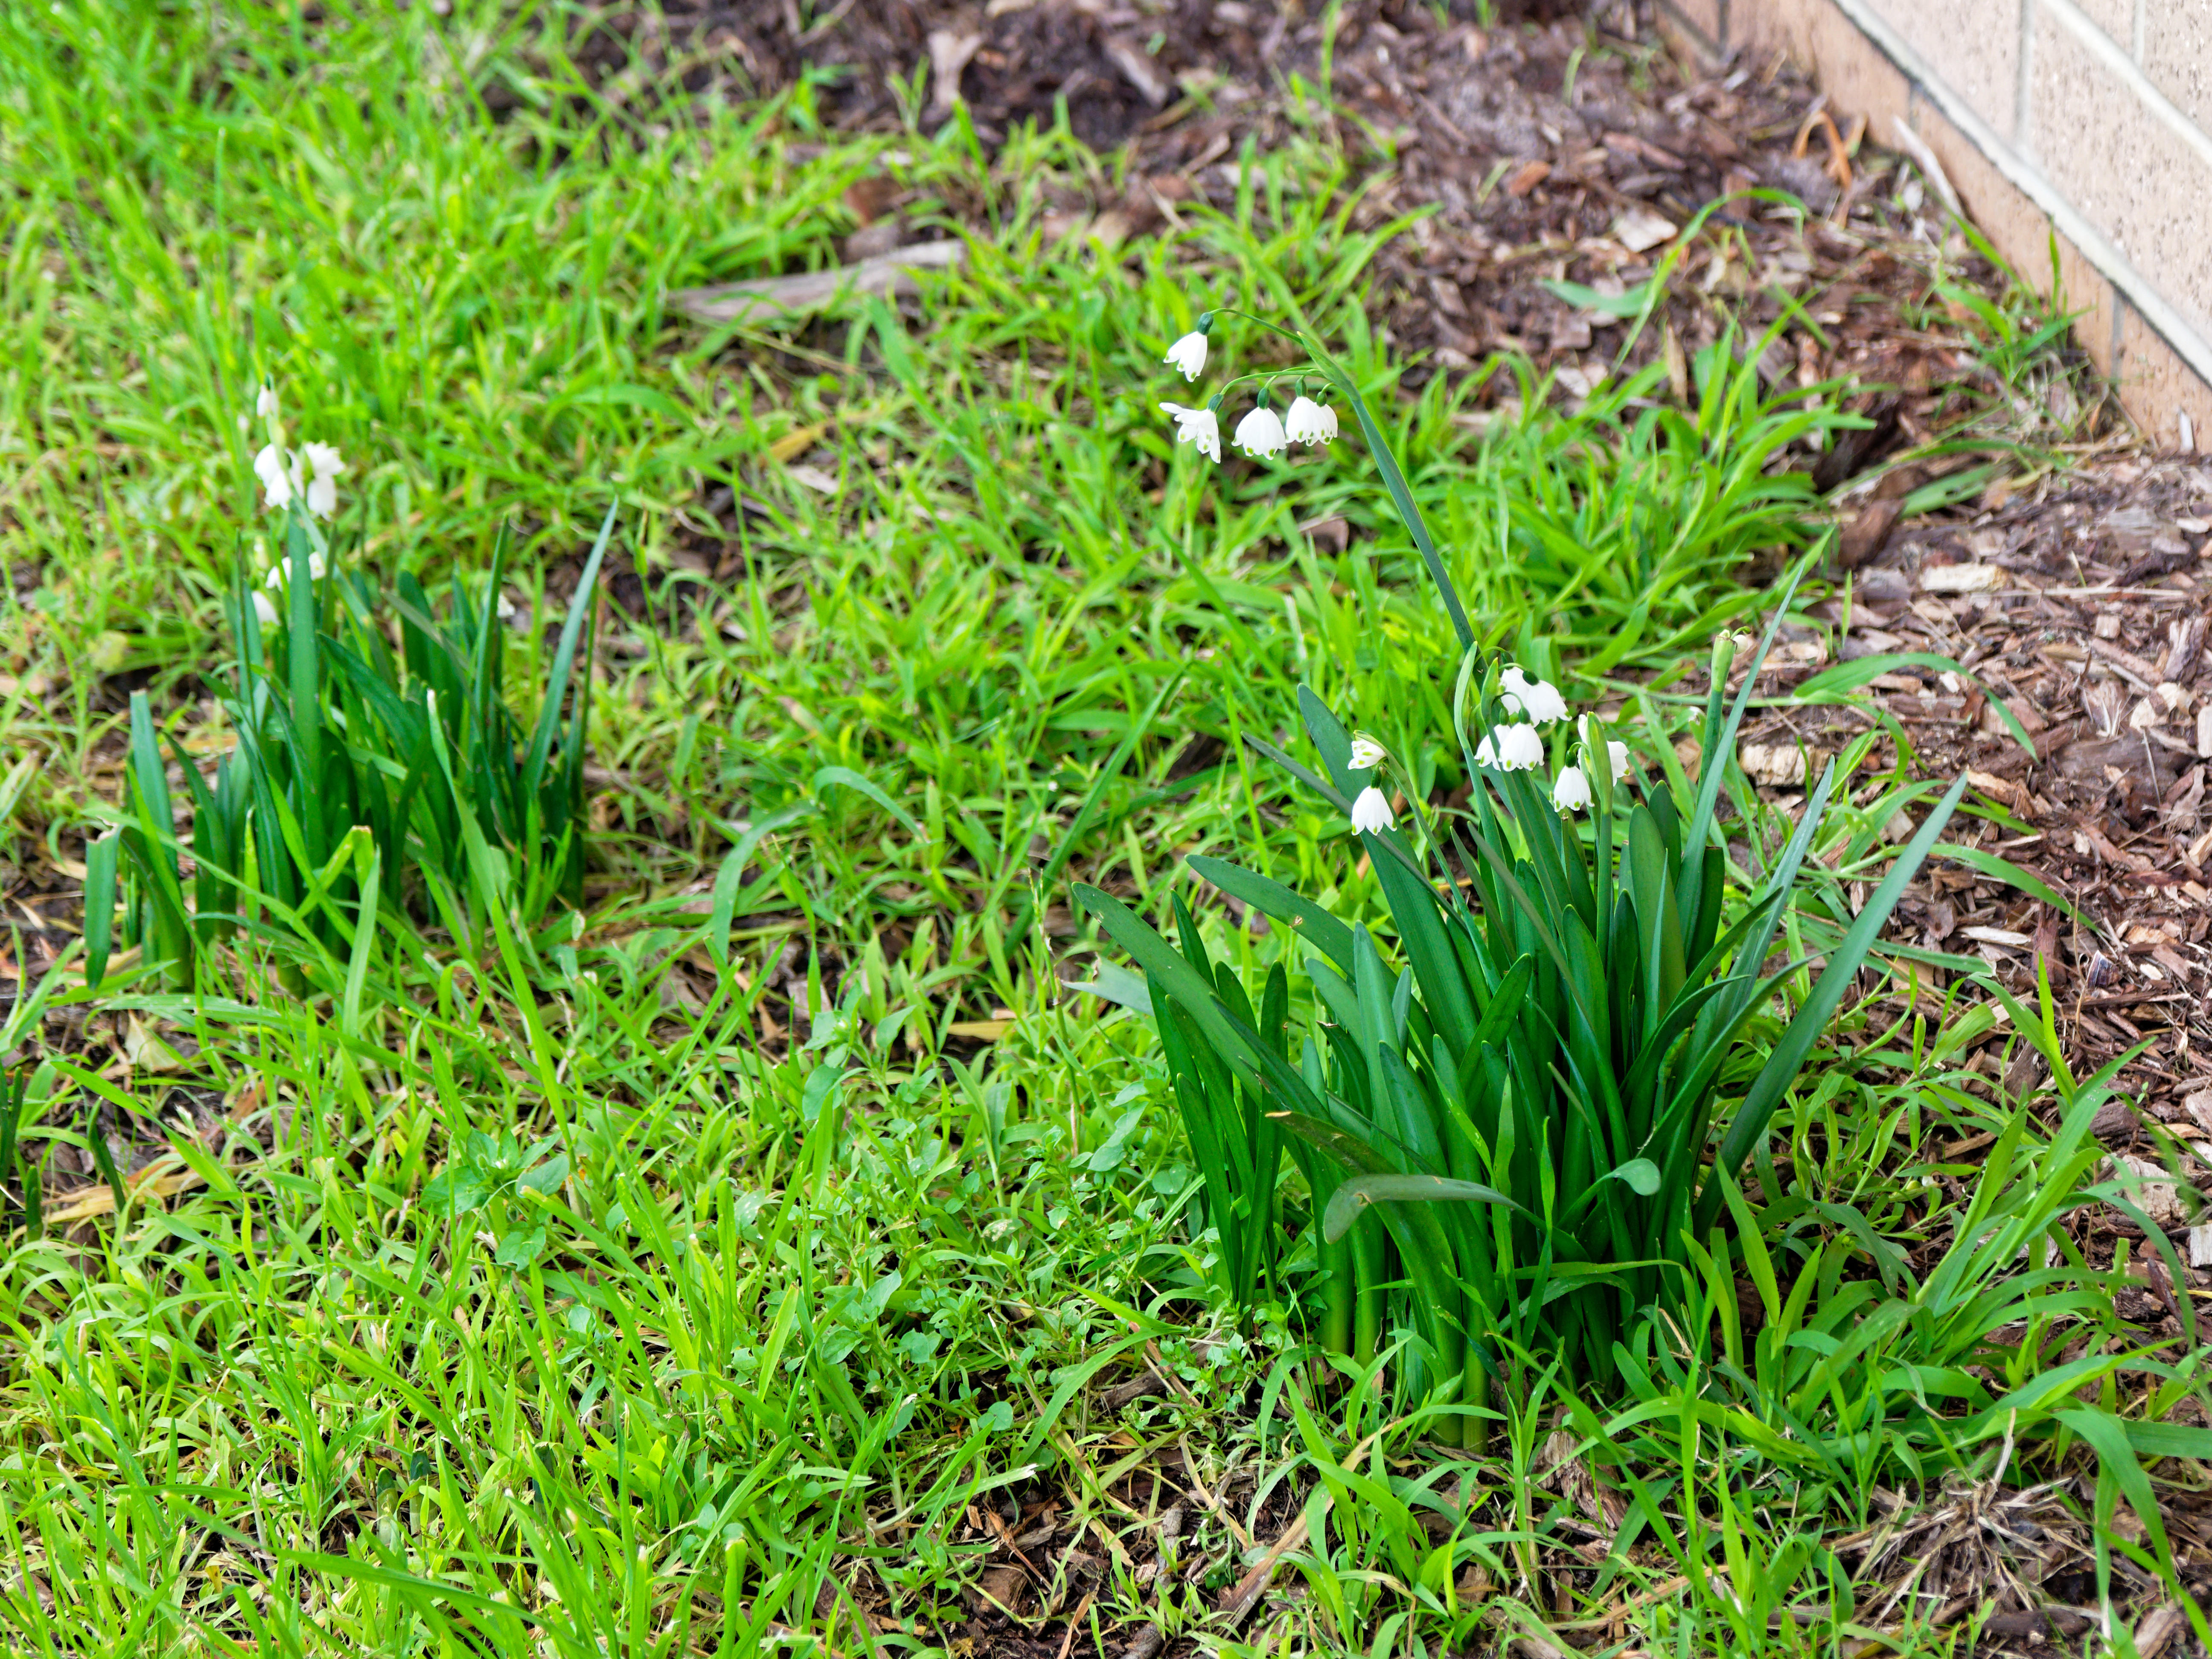 This should be Snowdrops.jpeg.  Is it missing?